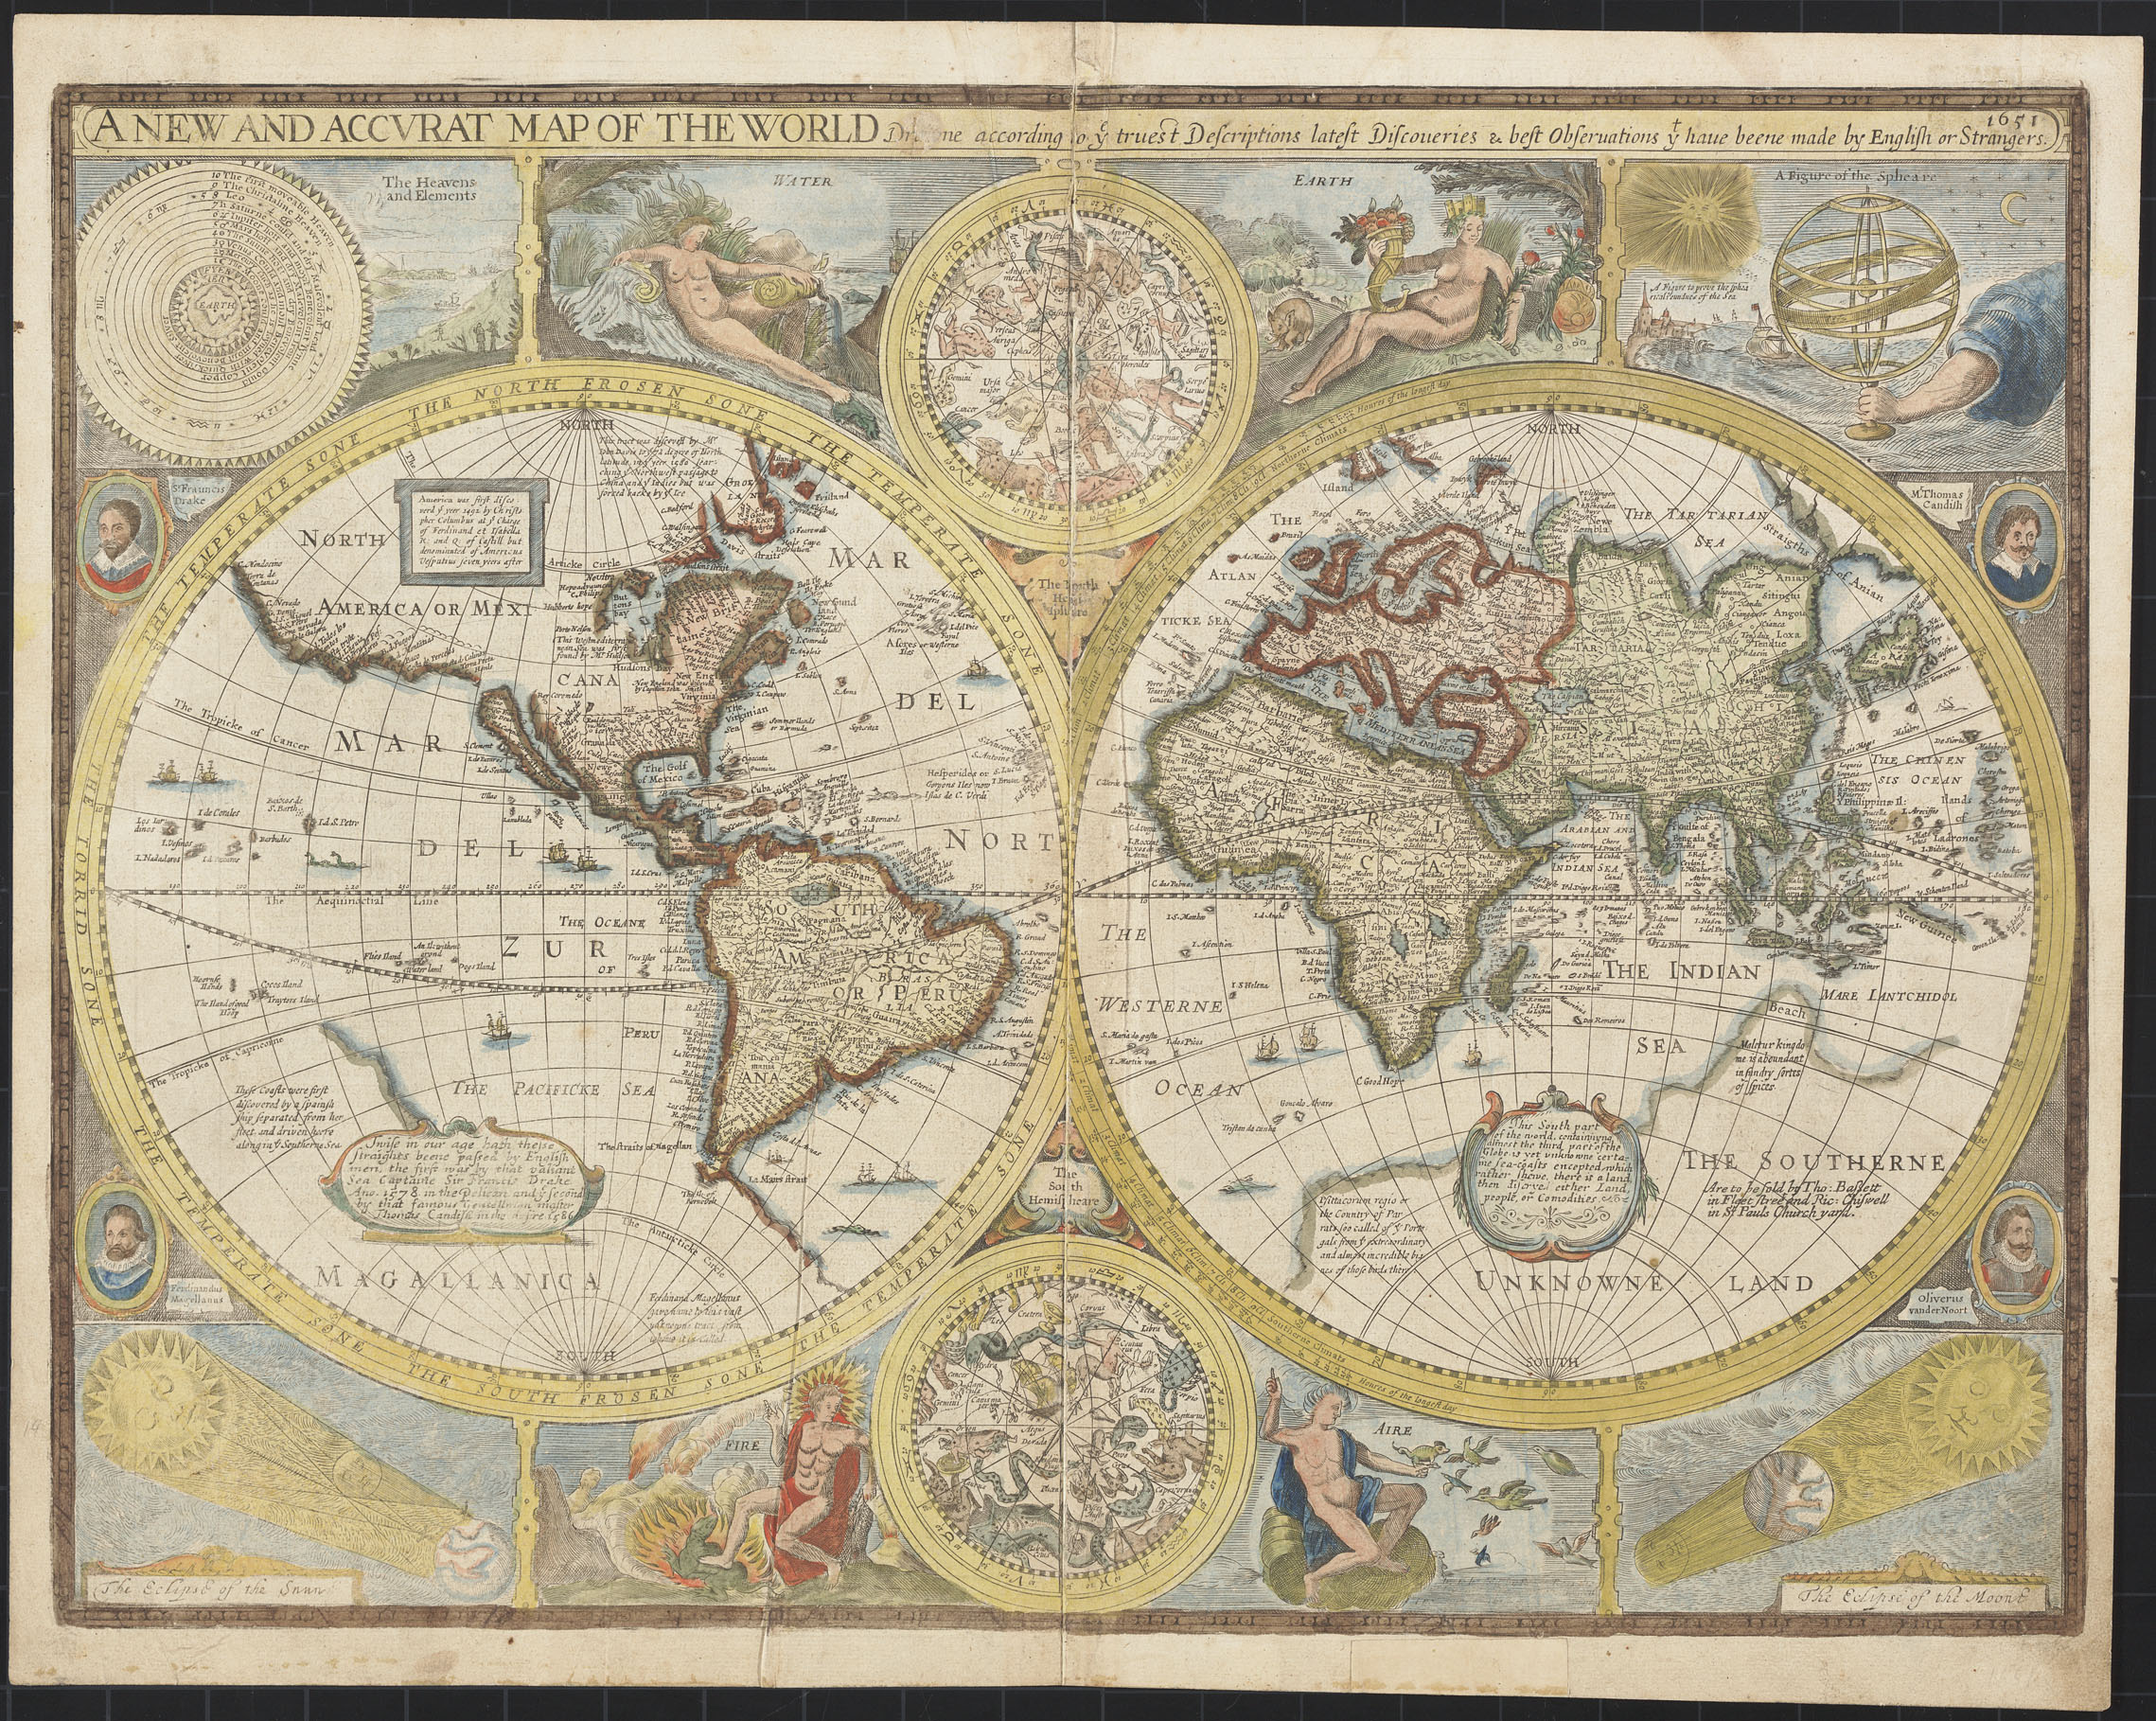 'A New and Accurat Map of the World.'